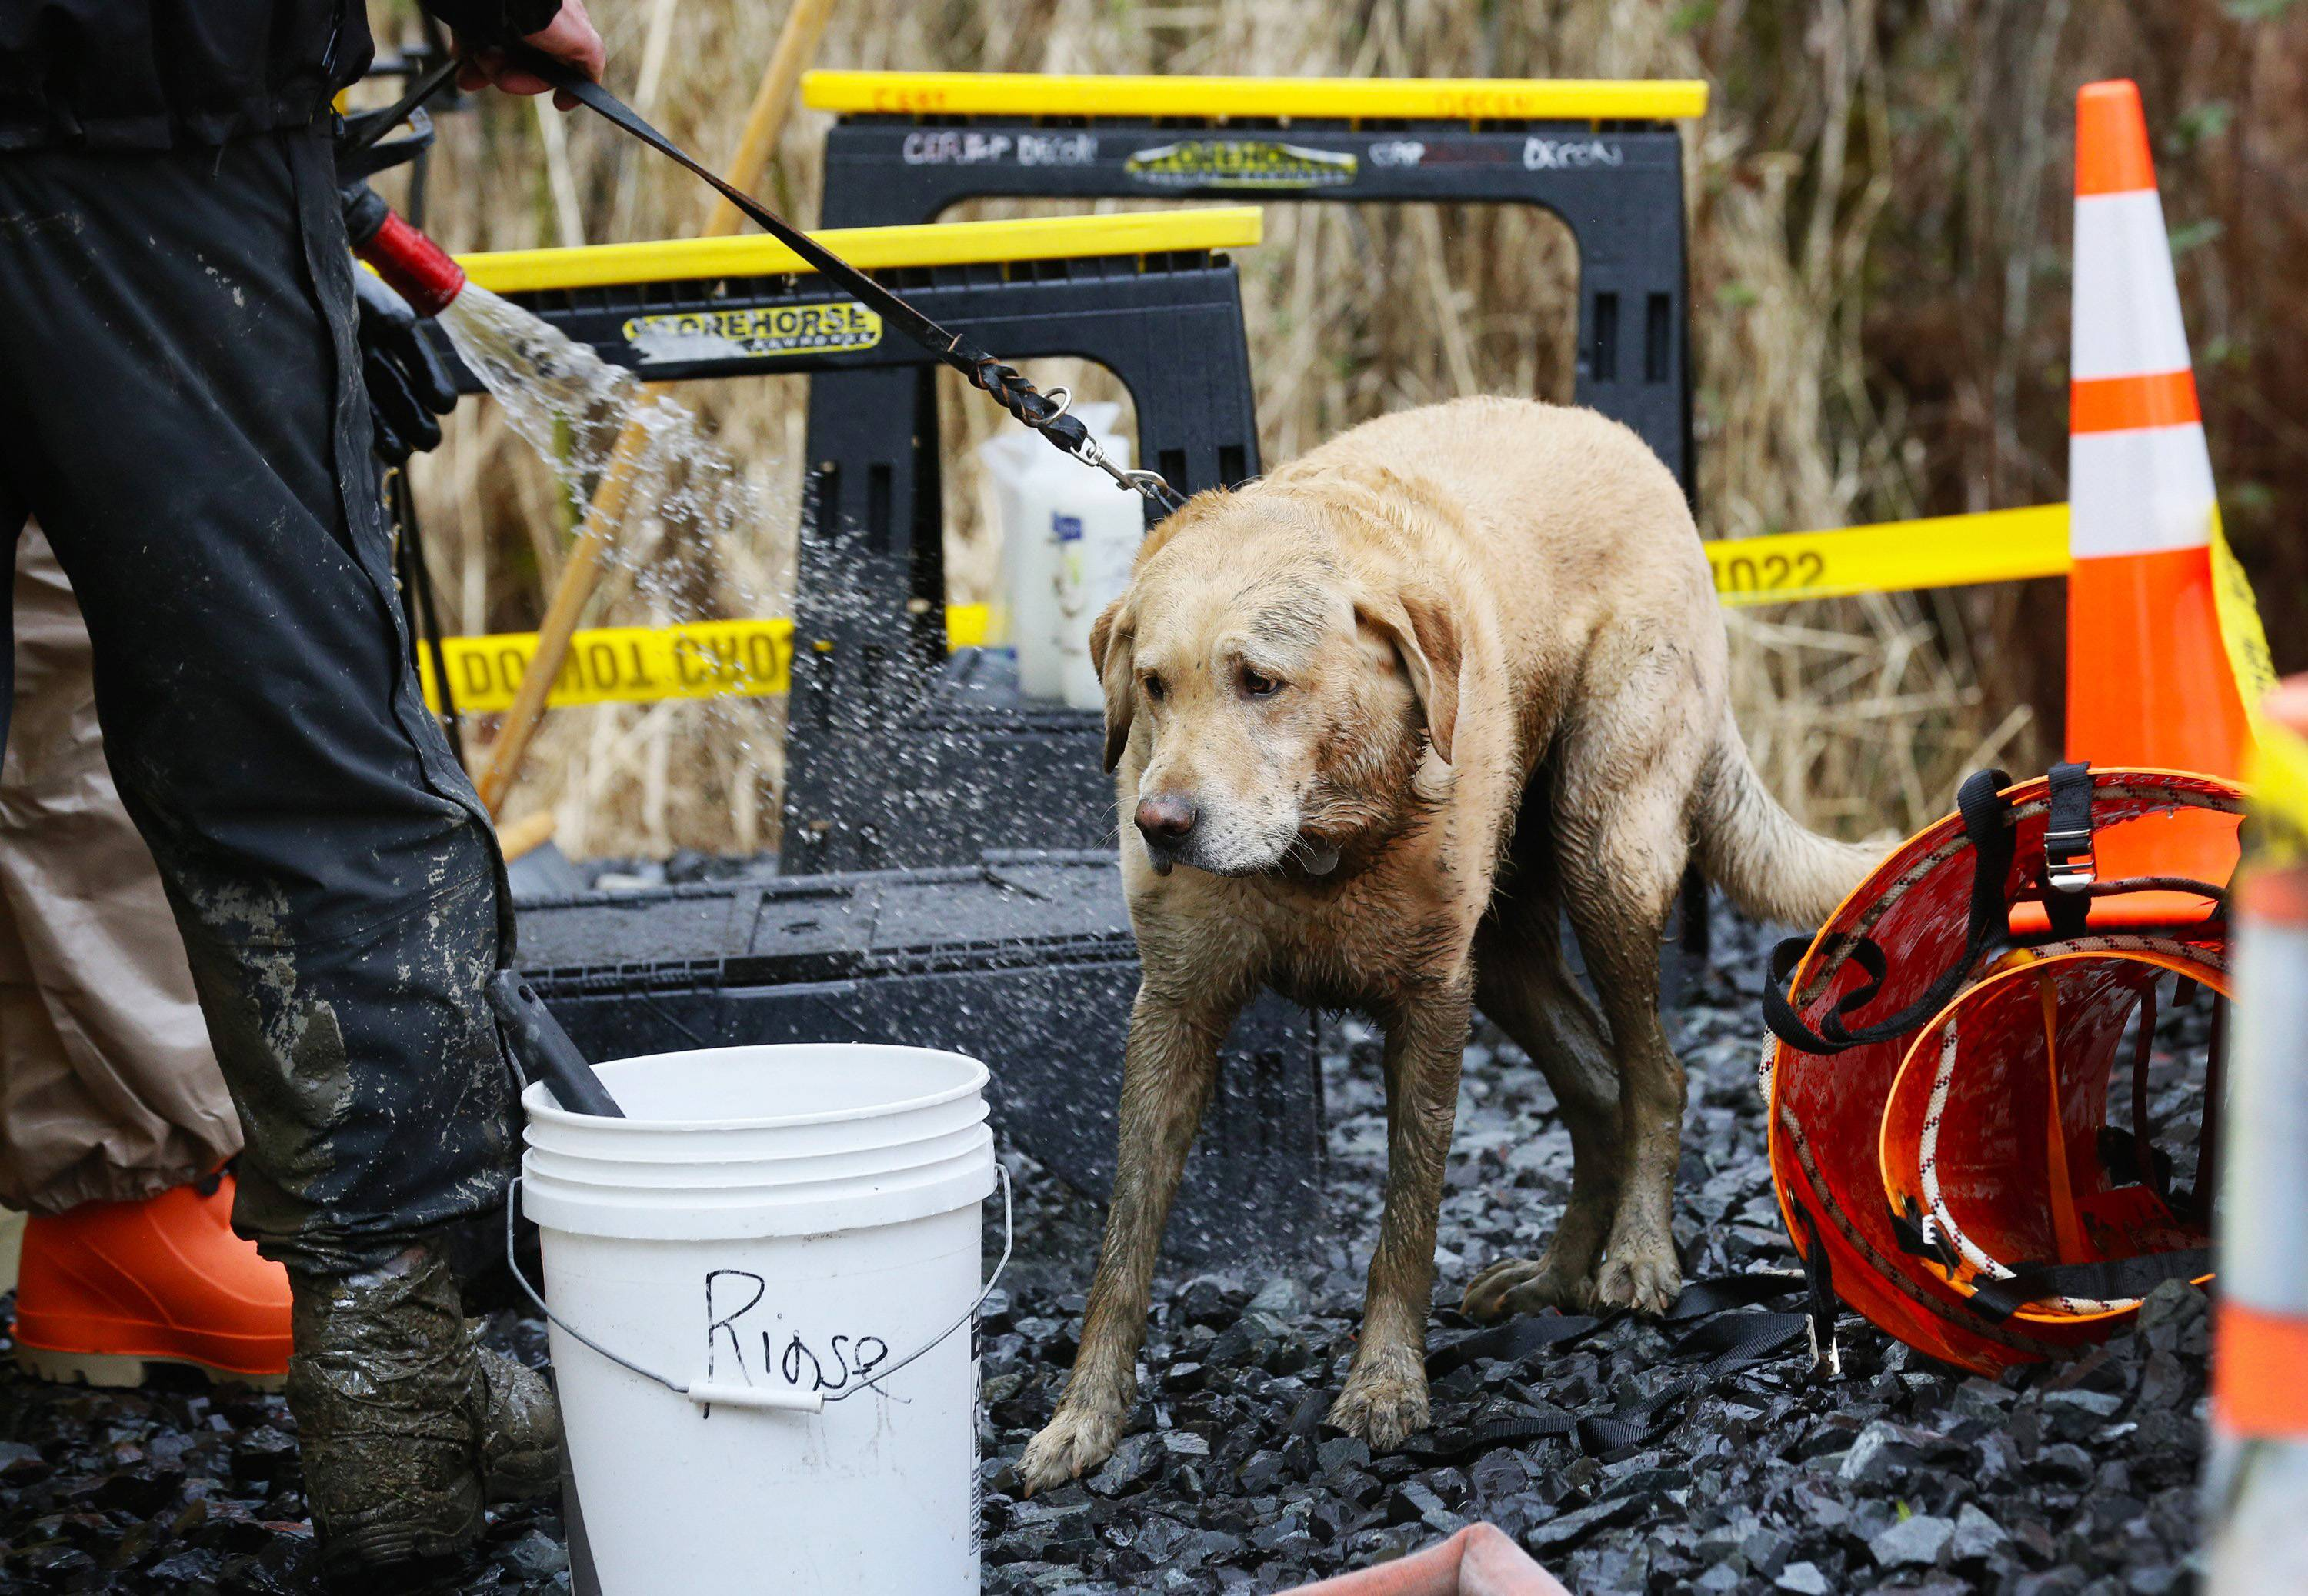 Rescue dog Nexus, muddy from working onsite, is decontaminated by a hose after leaving the west side of the mudslide Sunday in Arlington, Wash. Periods of rain and wind have hampered efforts the past two days.